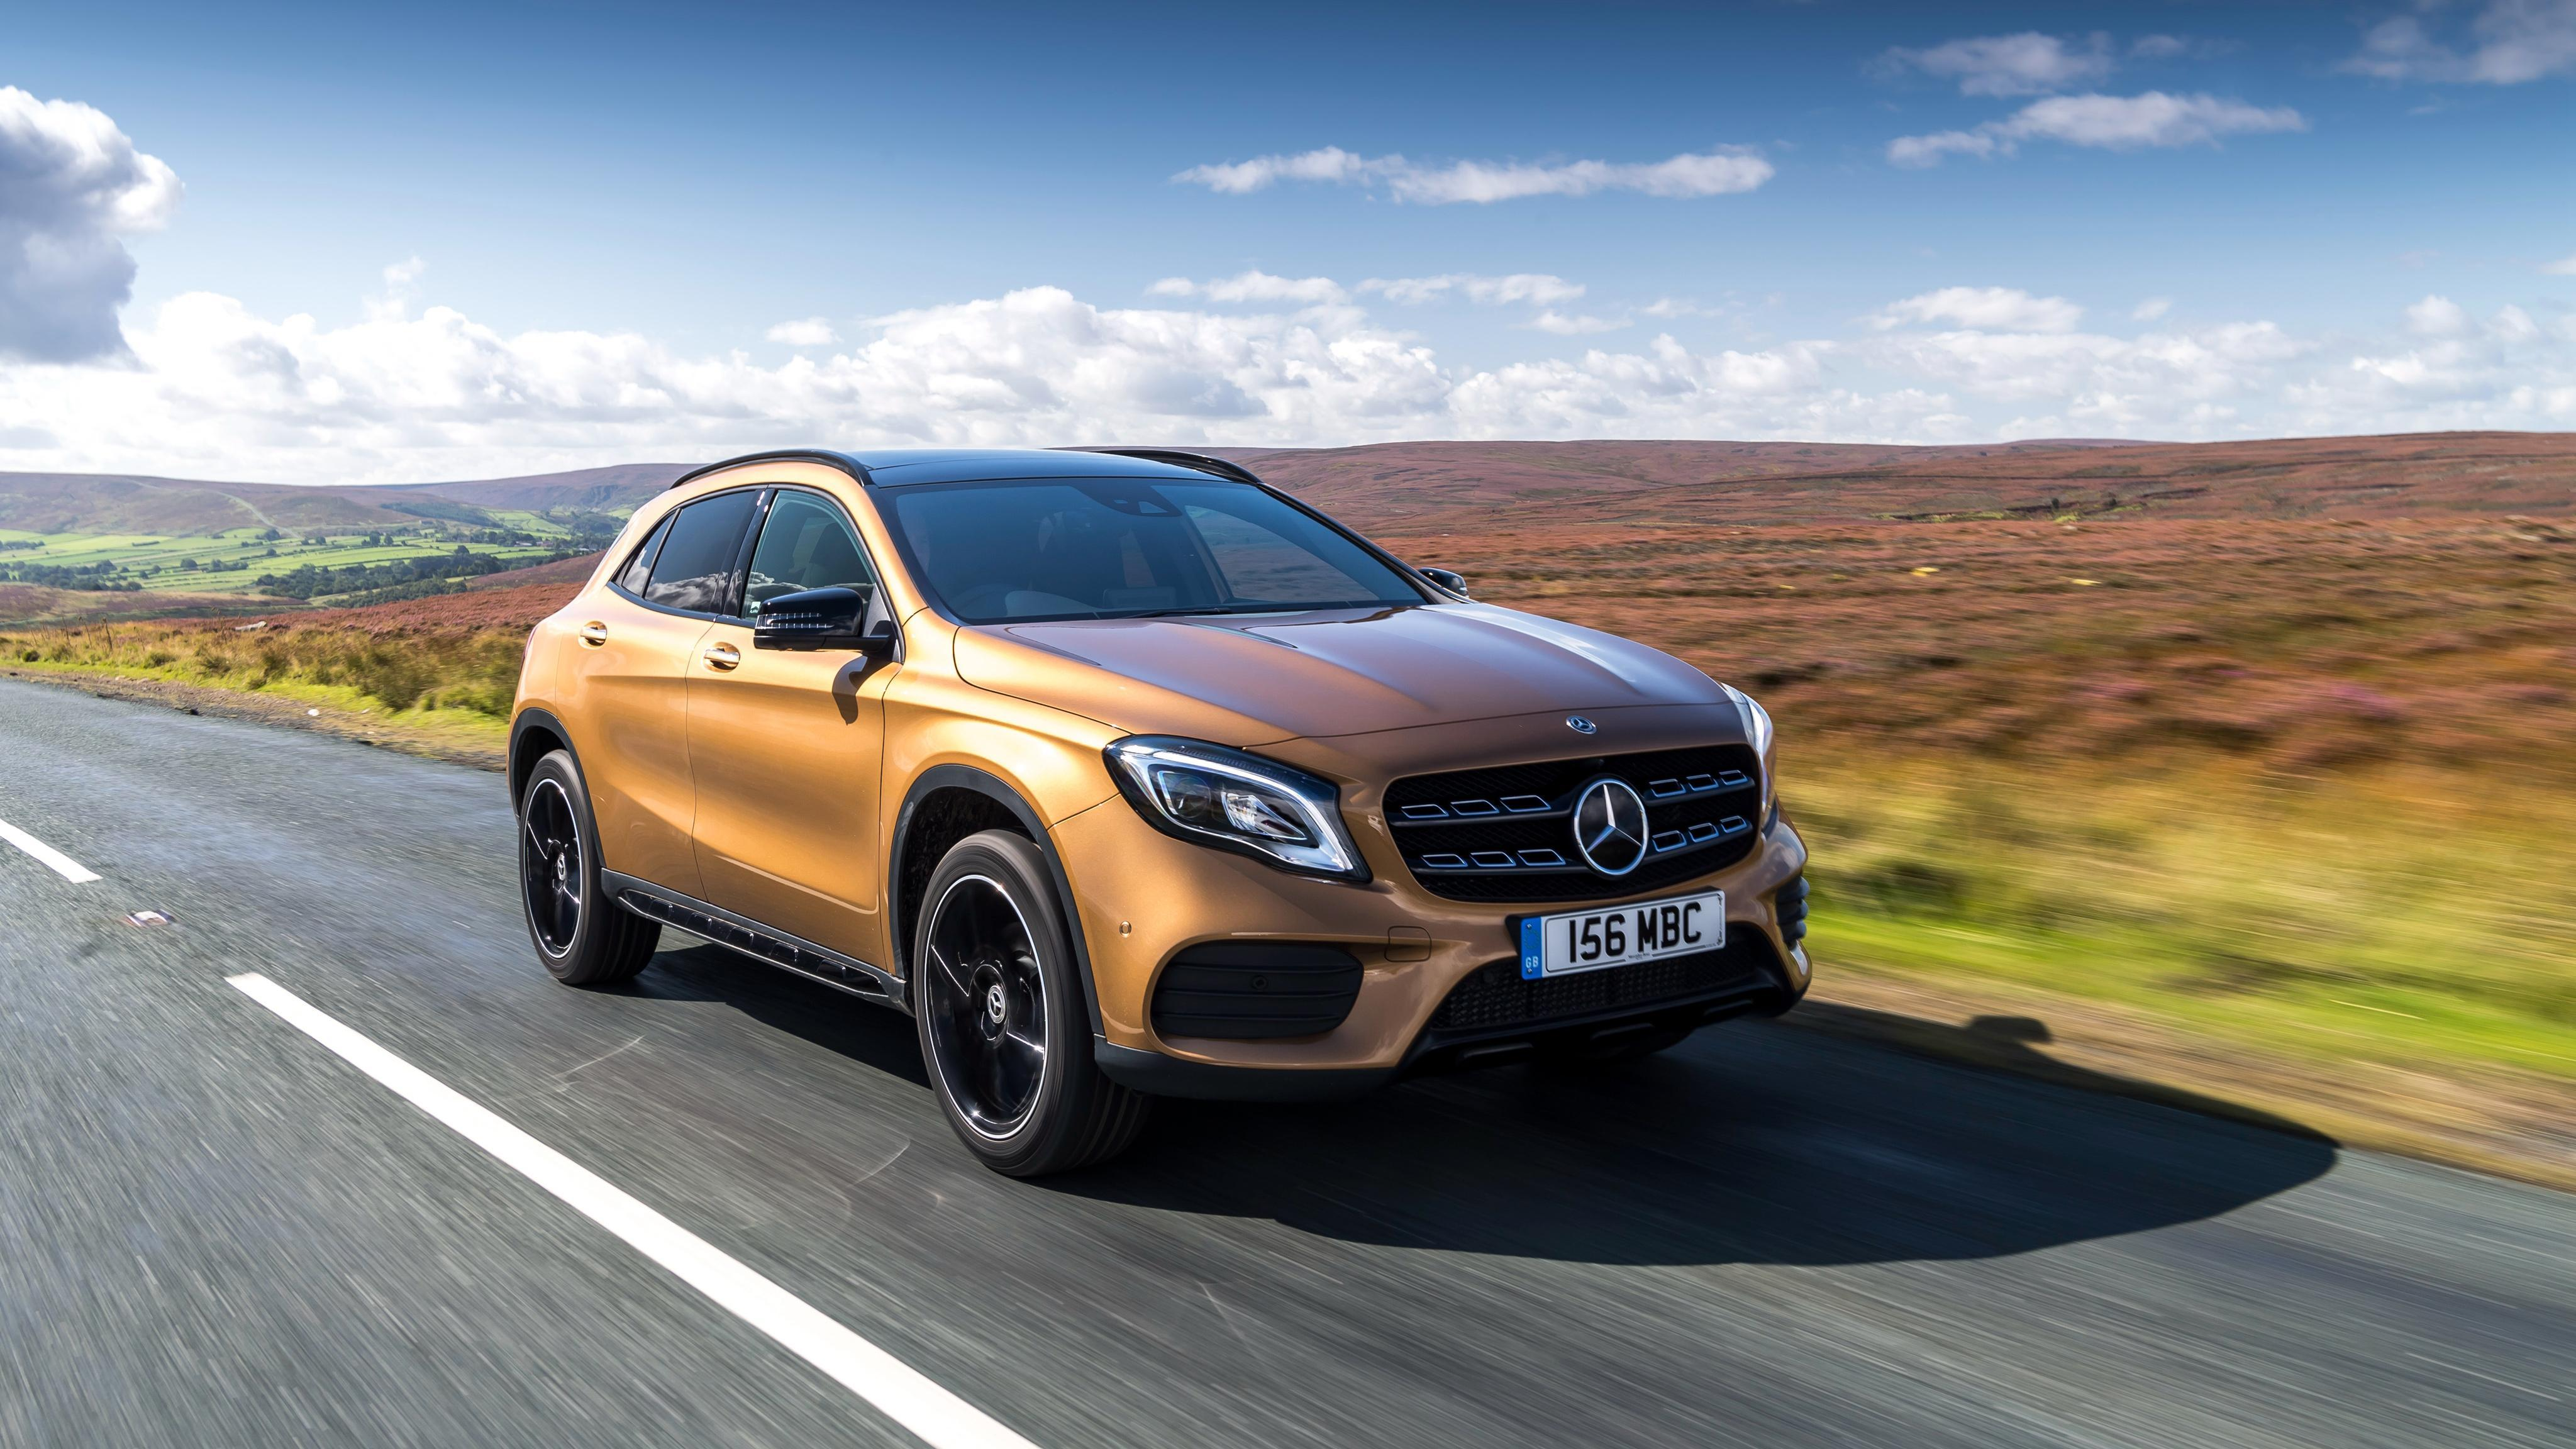 2017 Mercedes Benz GLA 220d 4MATIC AMG Line 4K 2 Wallpaper | HD Car ...